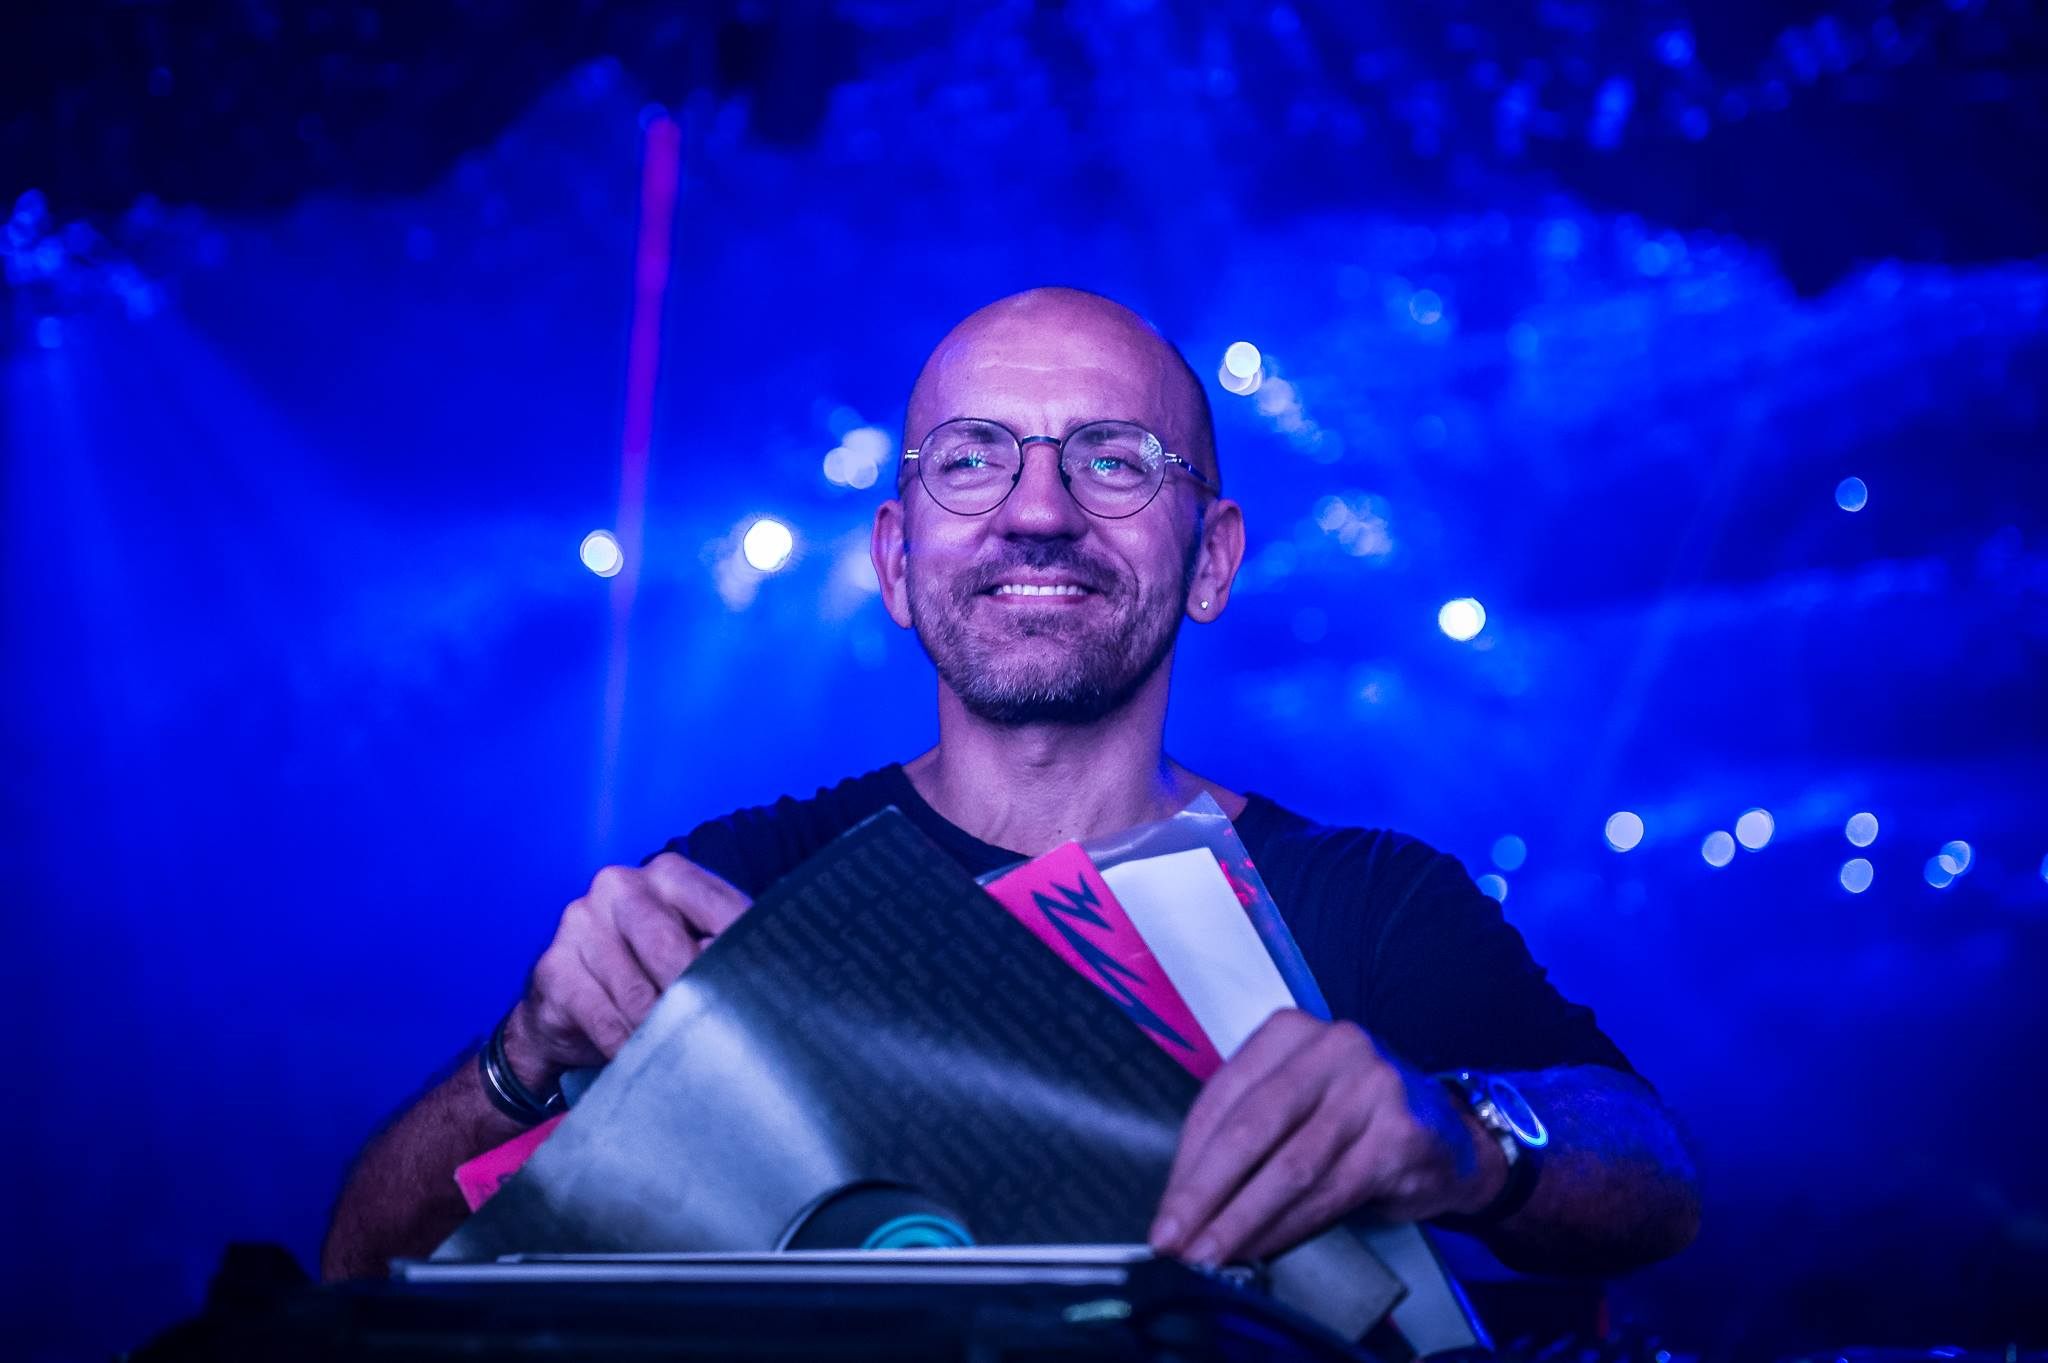 Papa Sven's atmospheric set stood in stark contrast to his banging 2014 performance.